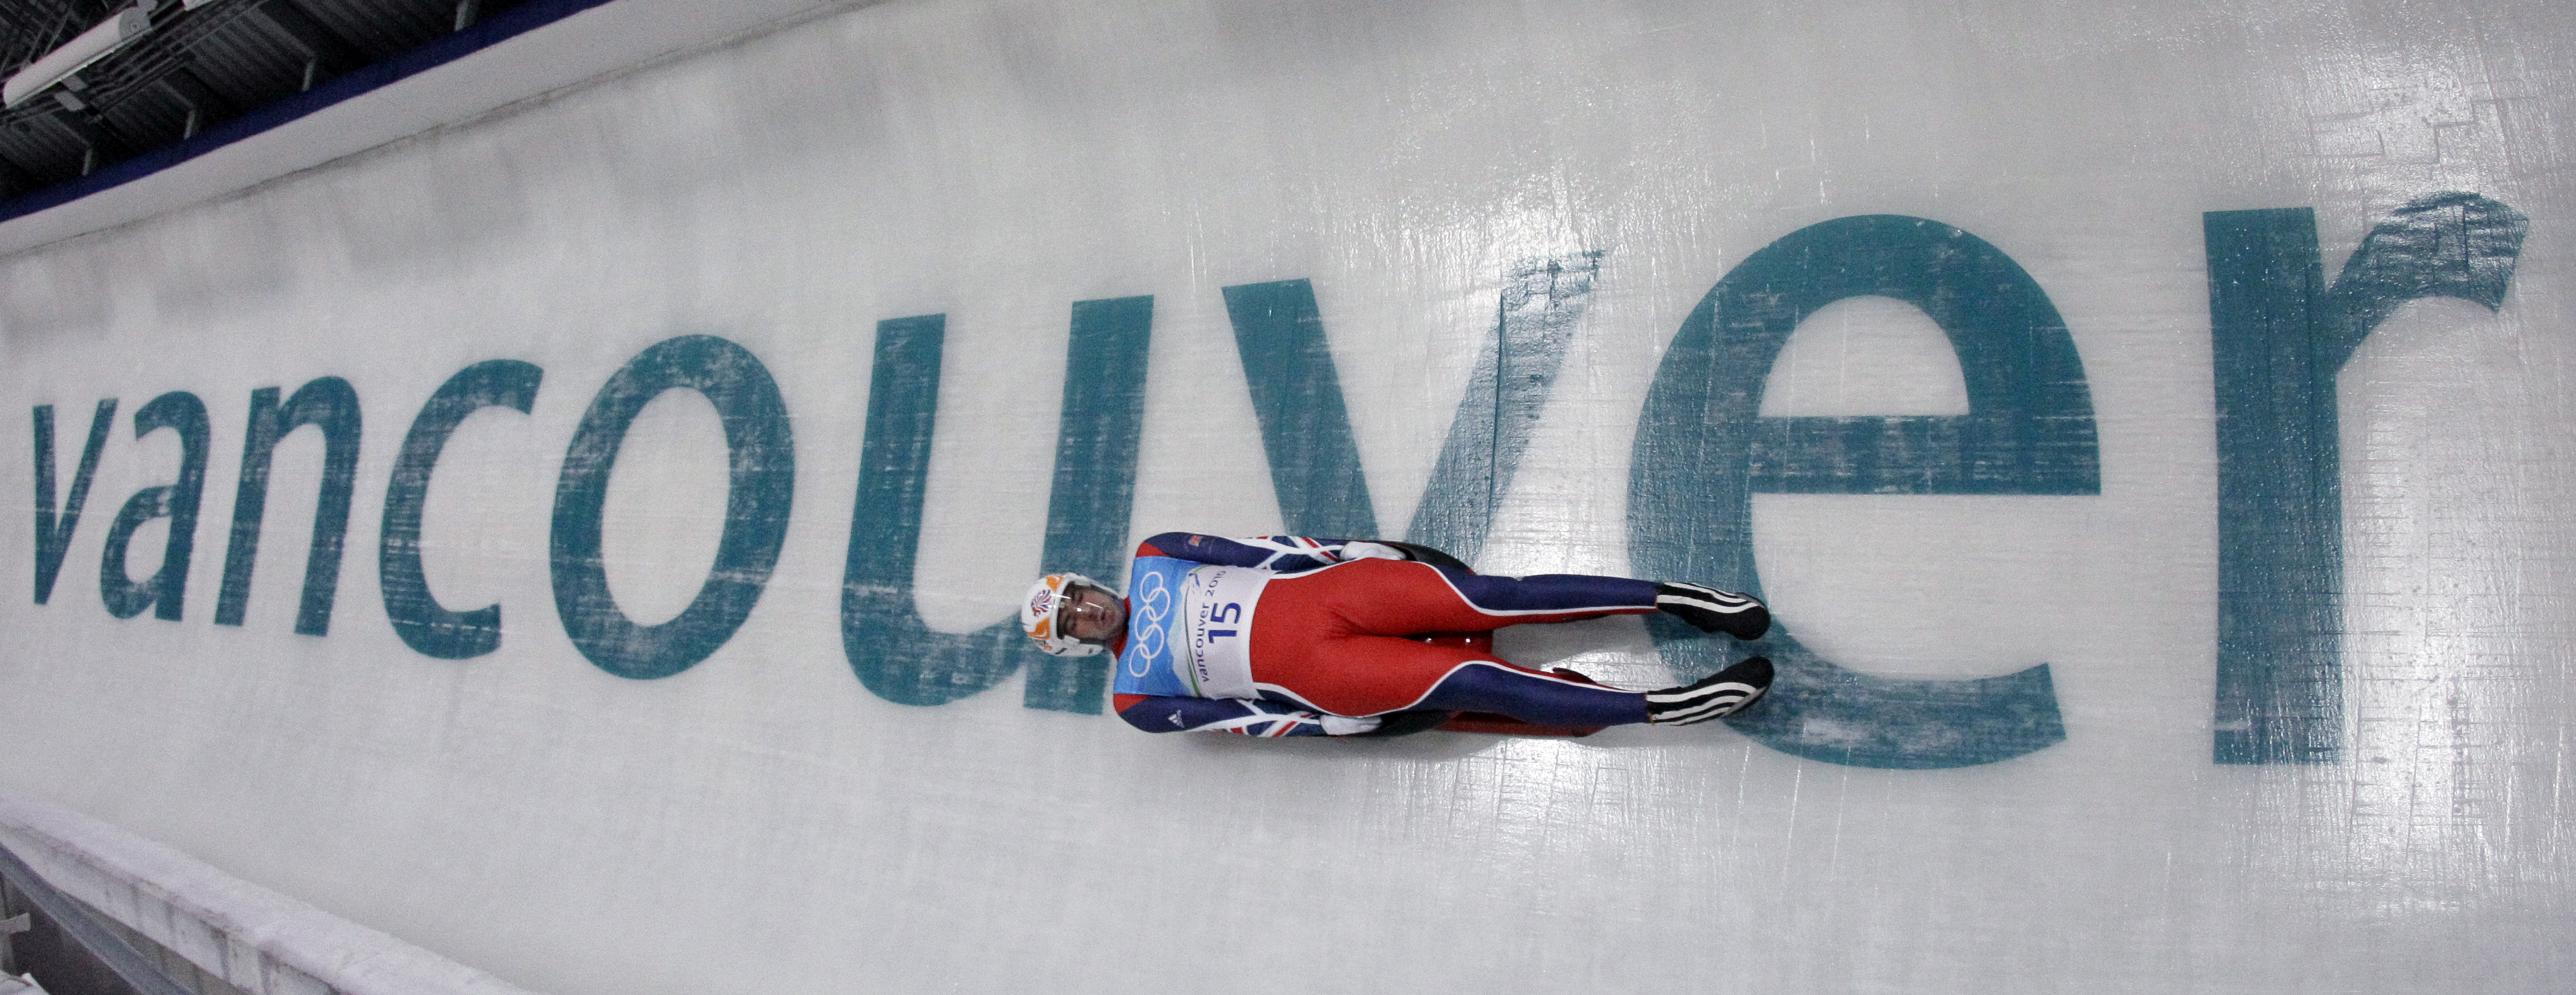 AJ during the Vancouver Olympics